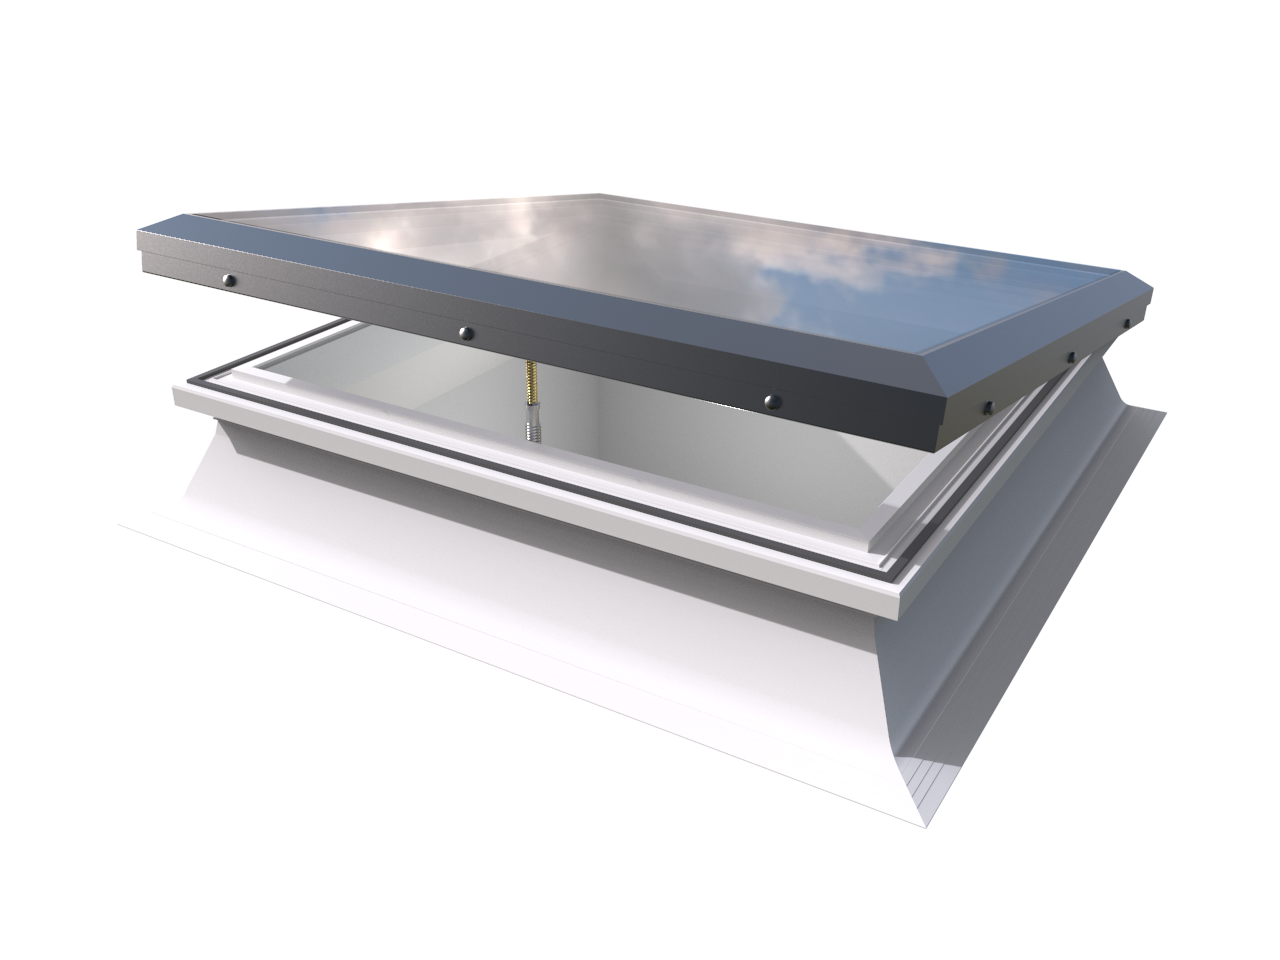 Mardome Glass Trade Rooflight Manual Hinge with PVC kerb